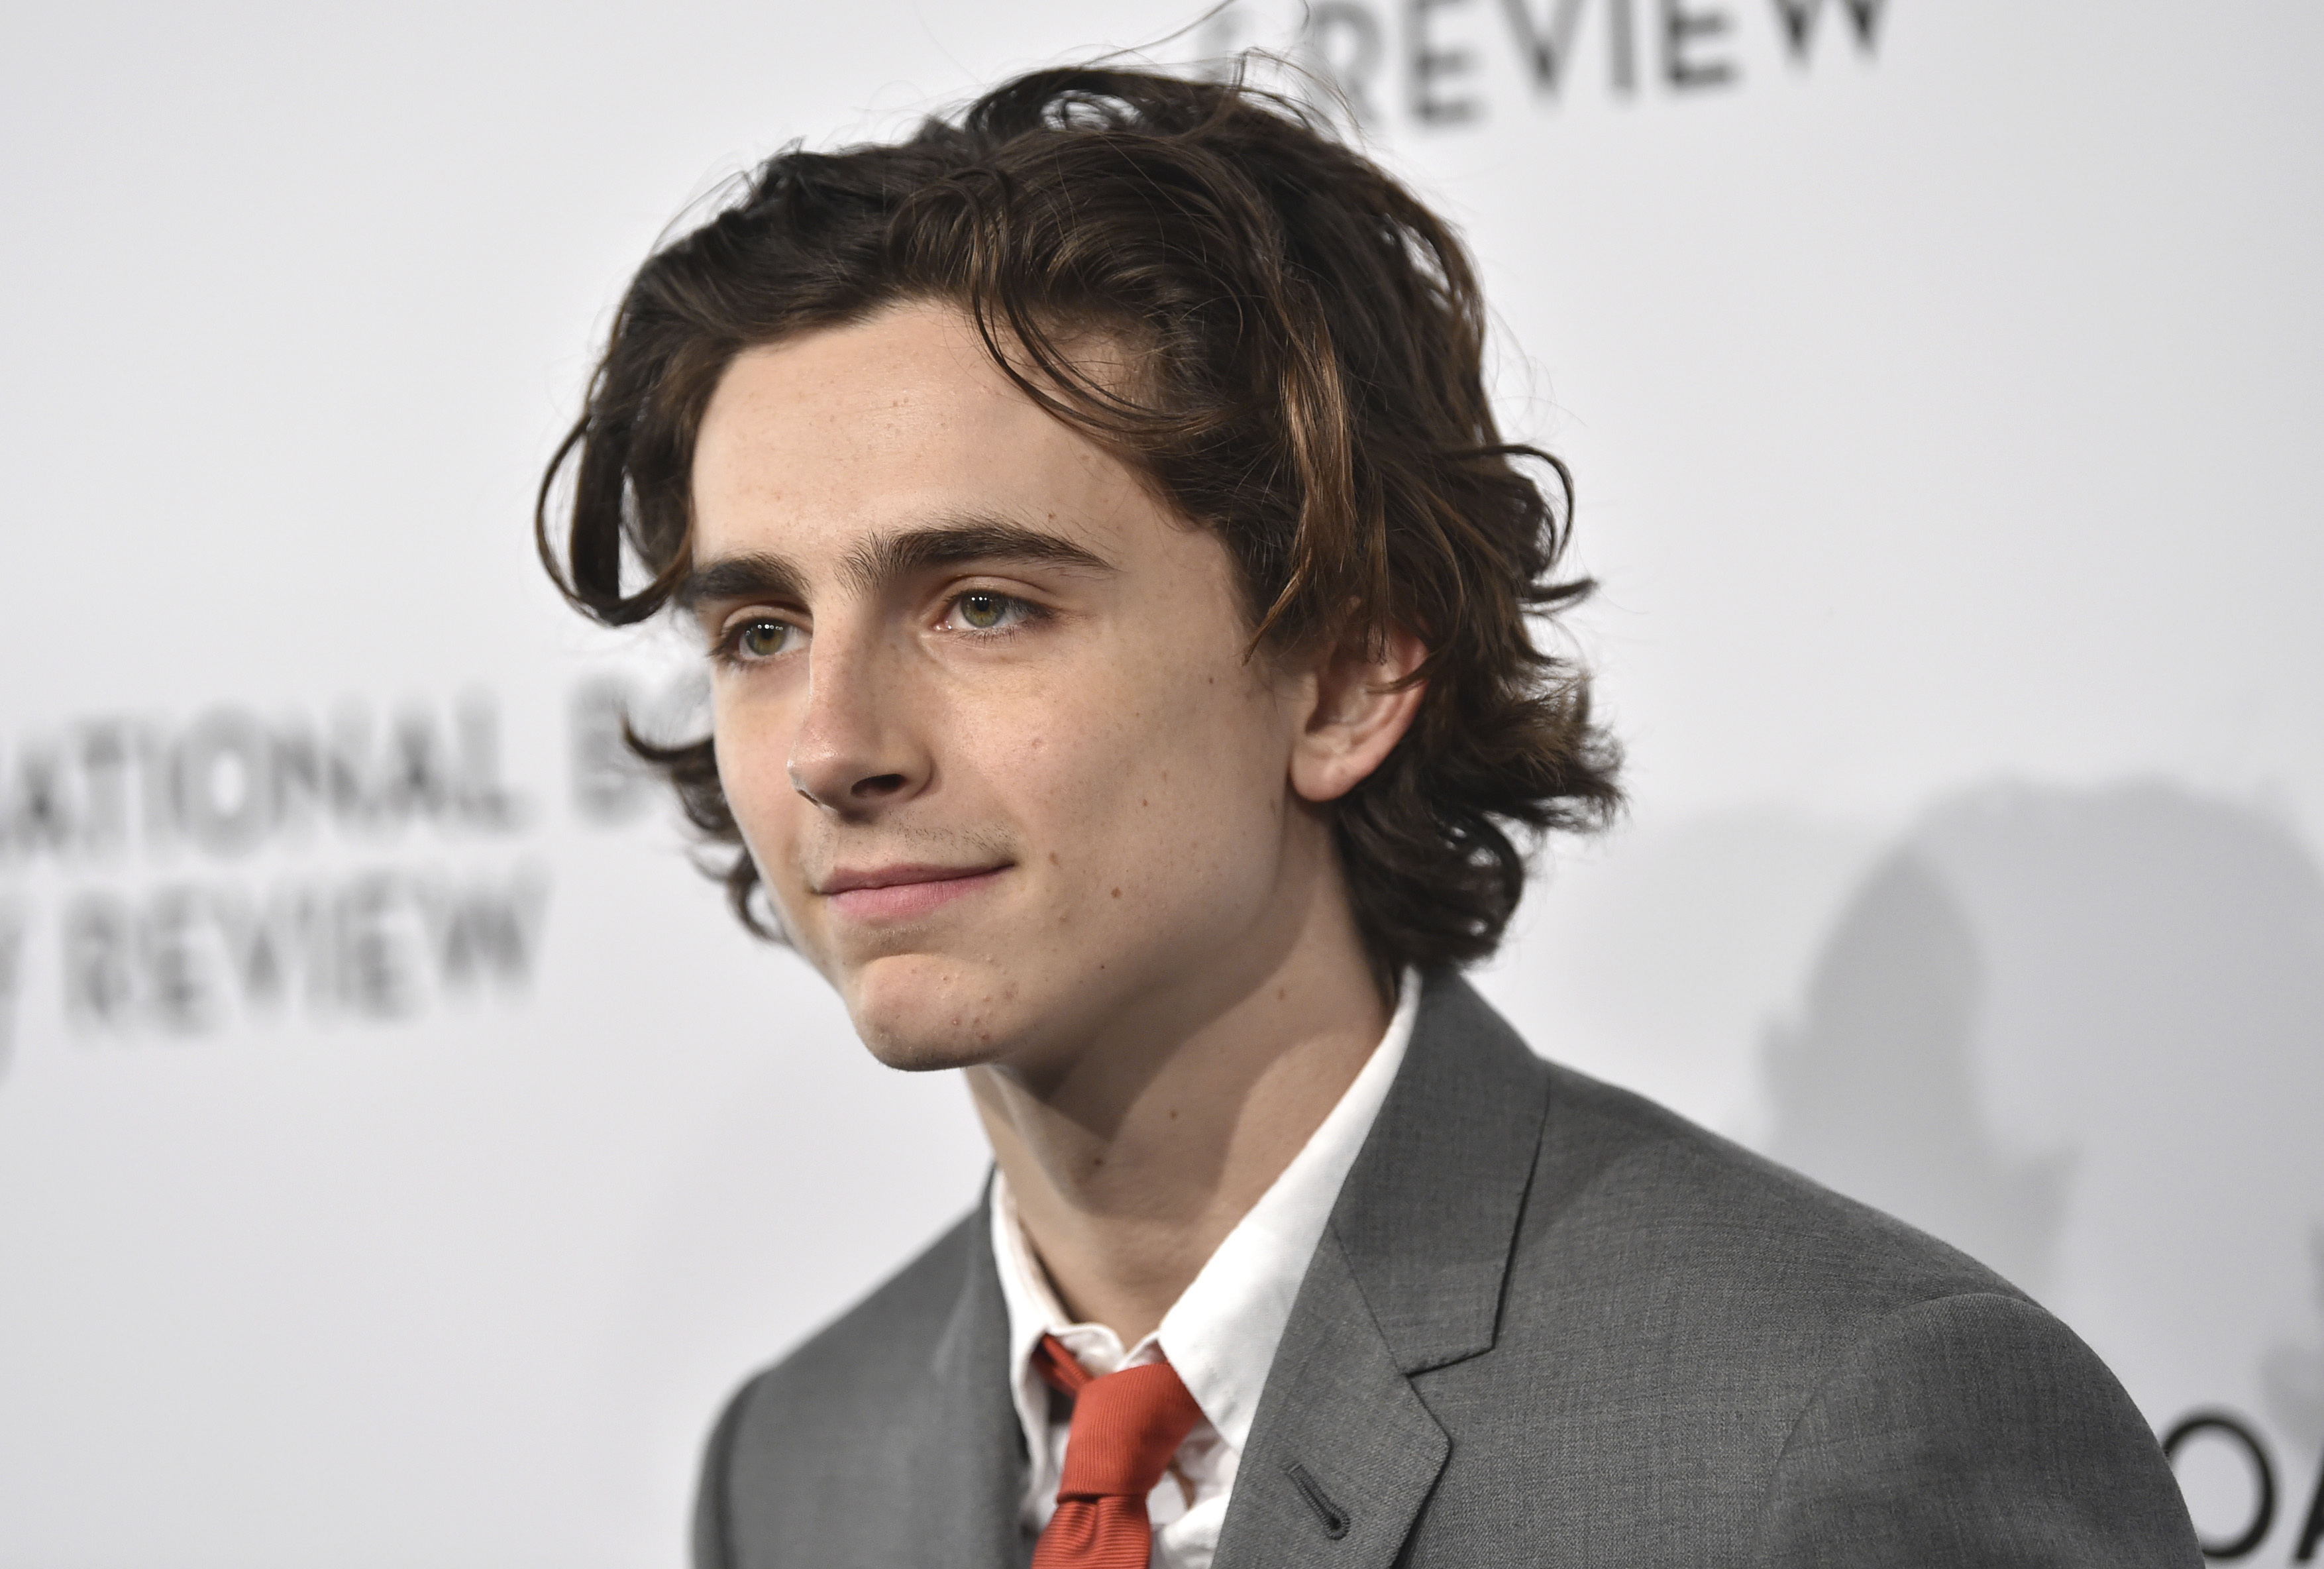 Timothee Chalamet says he will donate salary from Woody Allen film